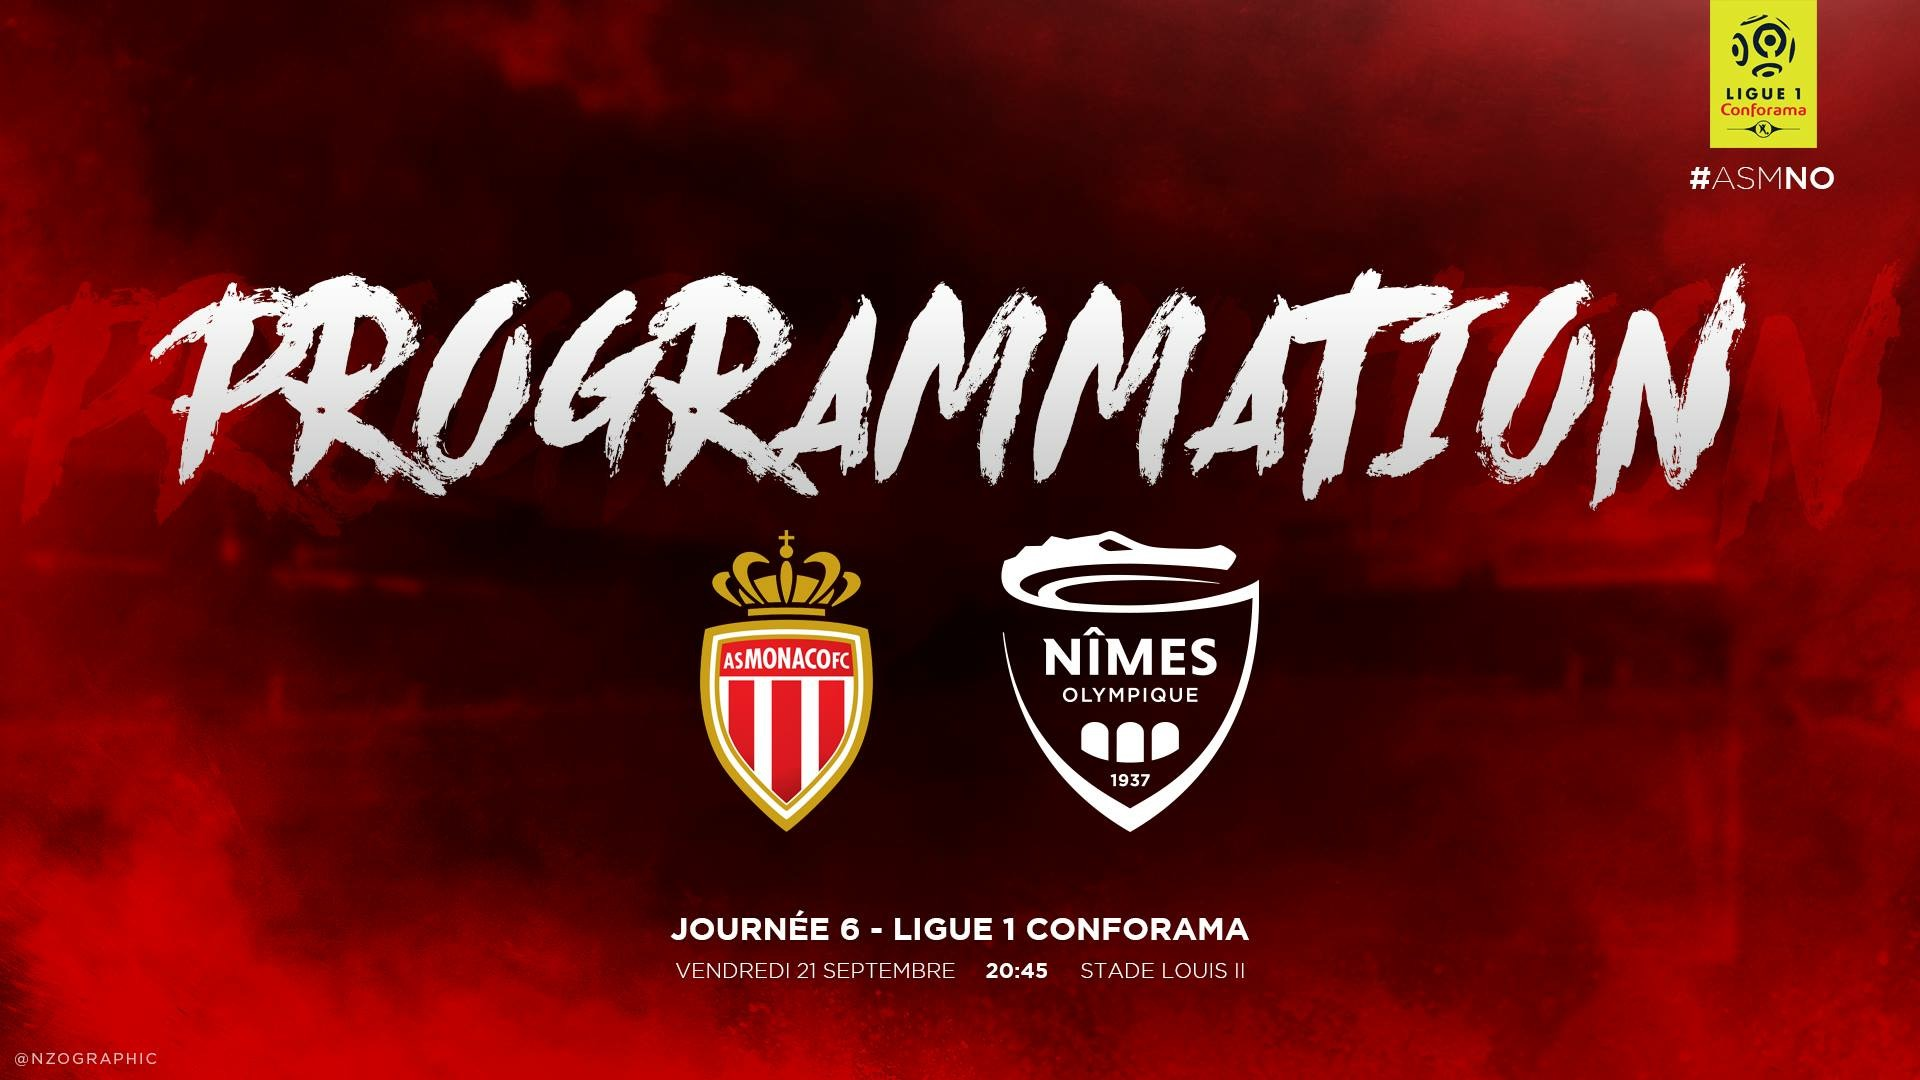 6e JOURNÉE DE LIGUE 1 CONFORAMA : AS MONACO / NÎMES OLYMPIQUE  Img_7827